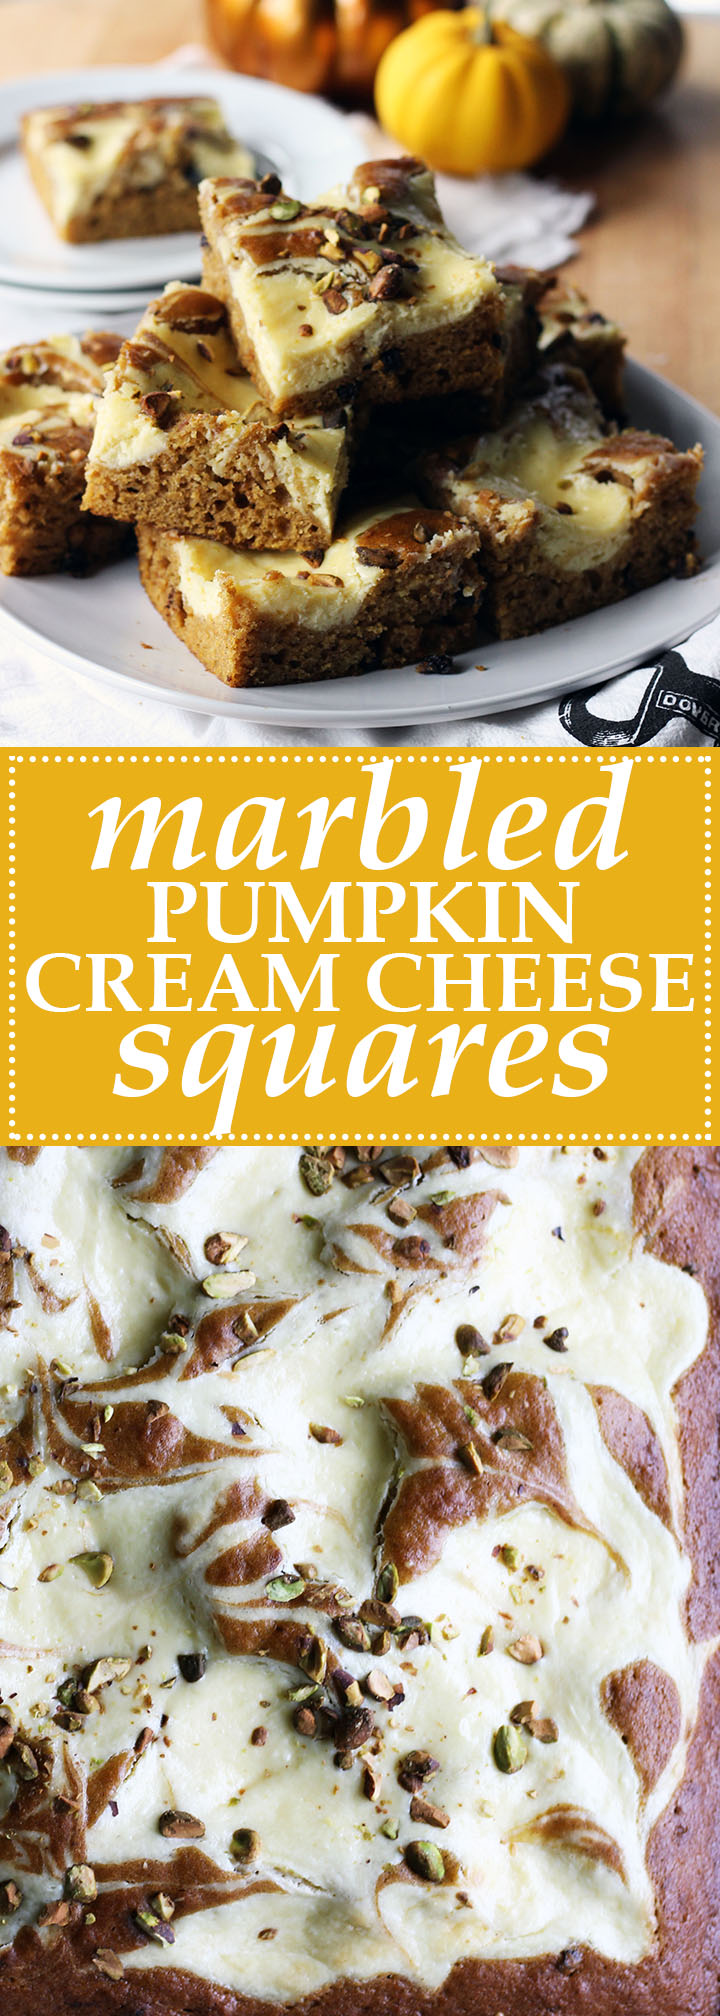 marbled pumpkin cream cheese squares | www.thetableofcontents.co